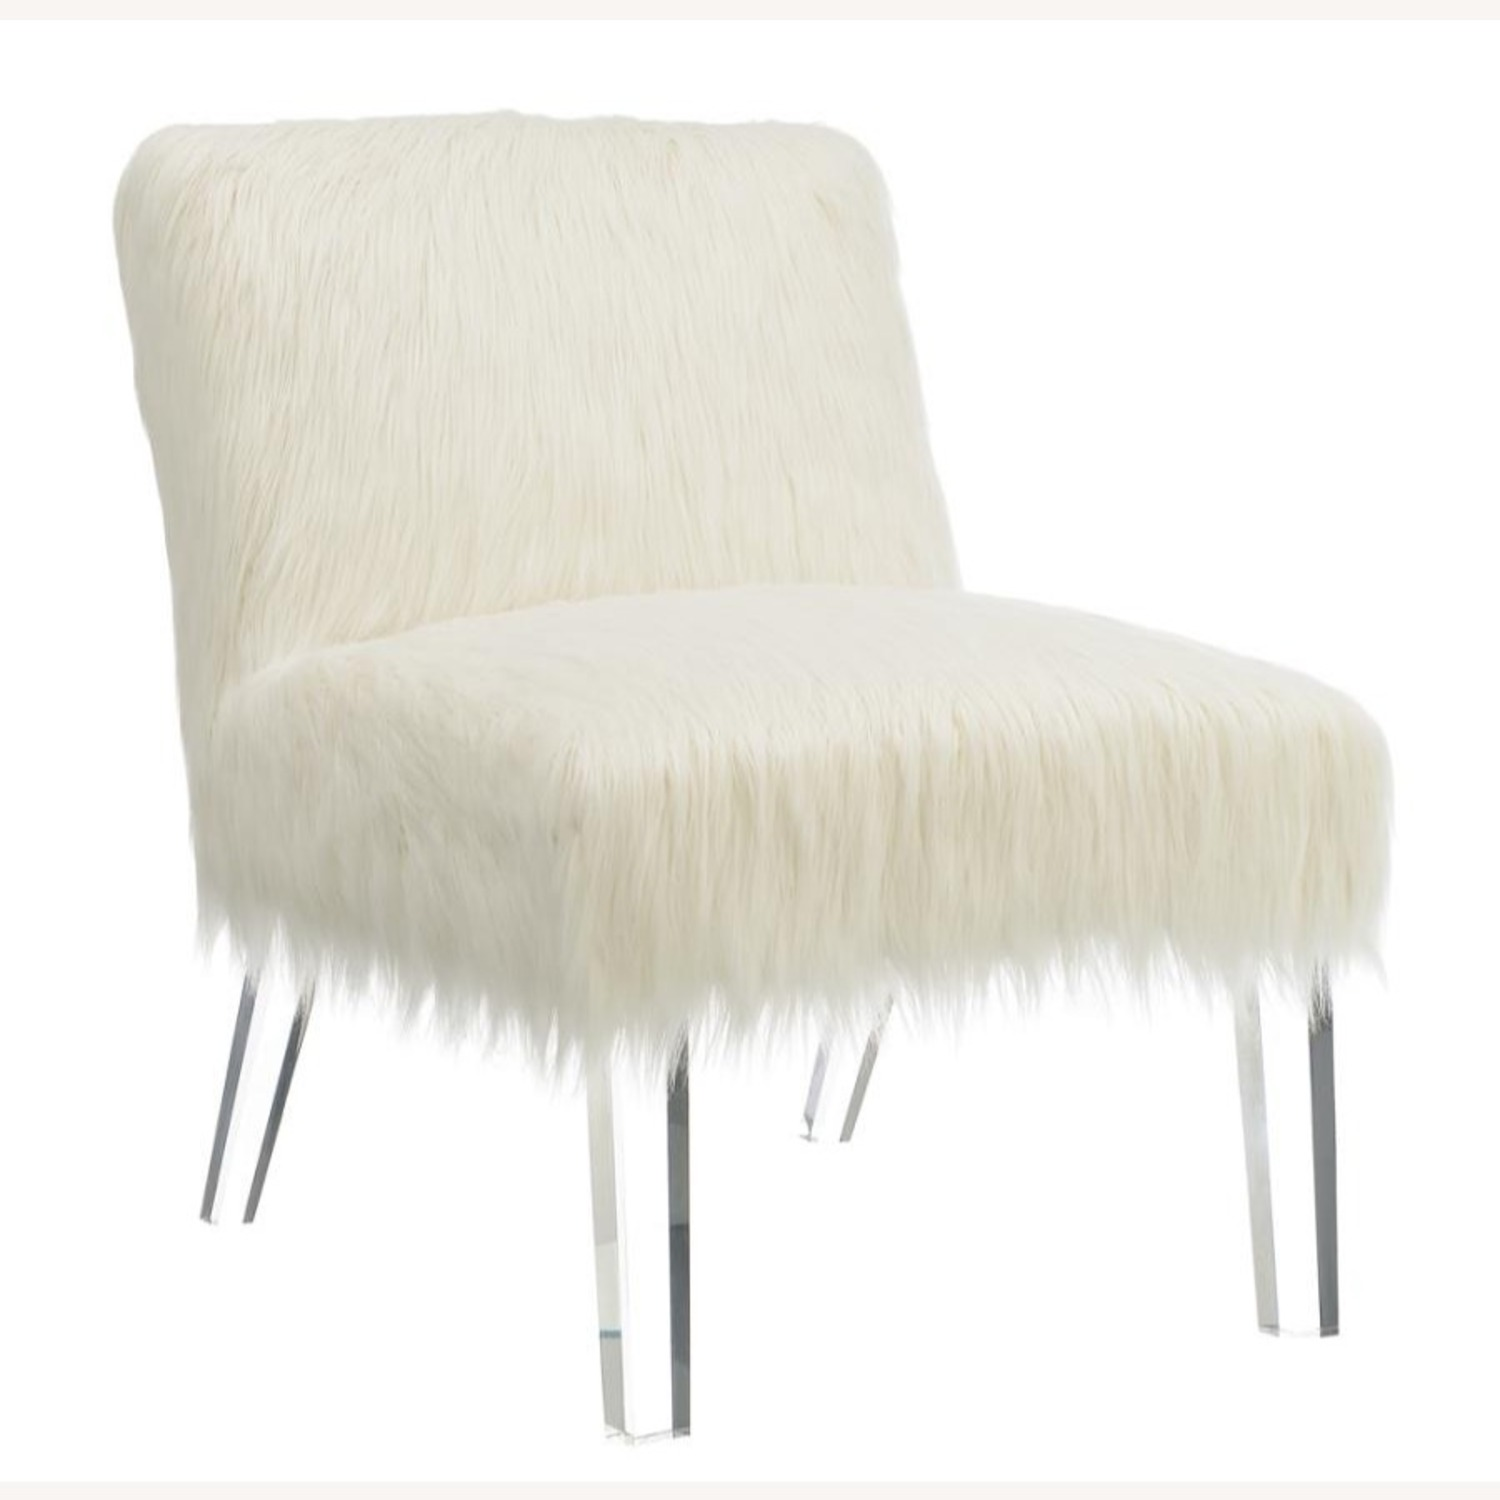 Accent Chair In Glamorous White Faux Sheepskin - image-0